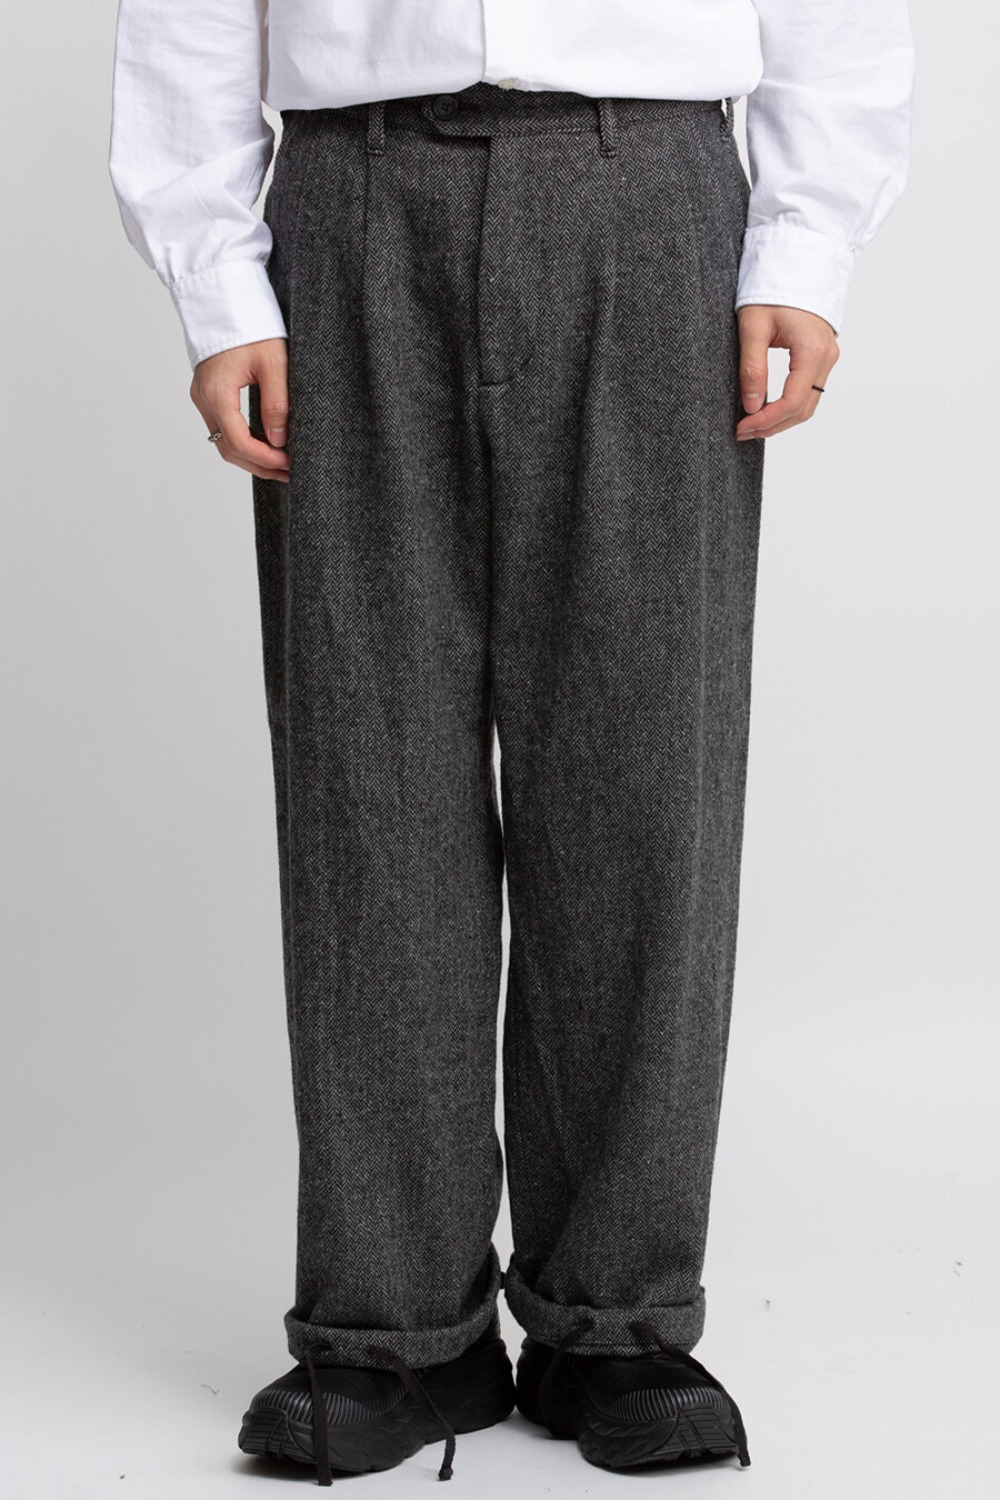 EMERSON PANT GREY POLY WOOL HERRINGBONE